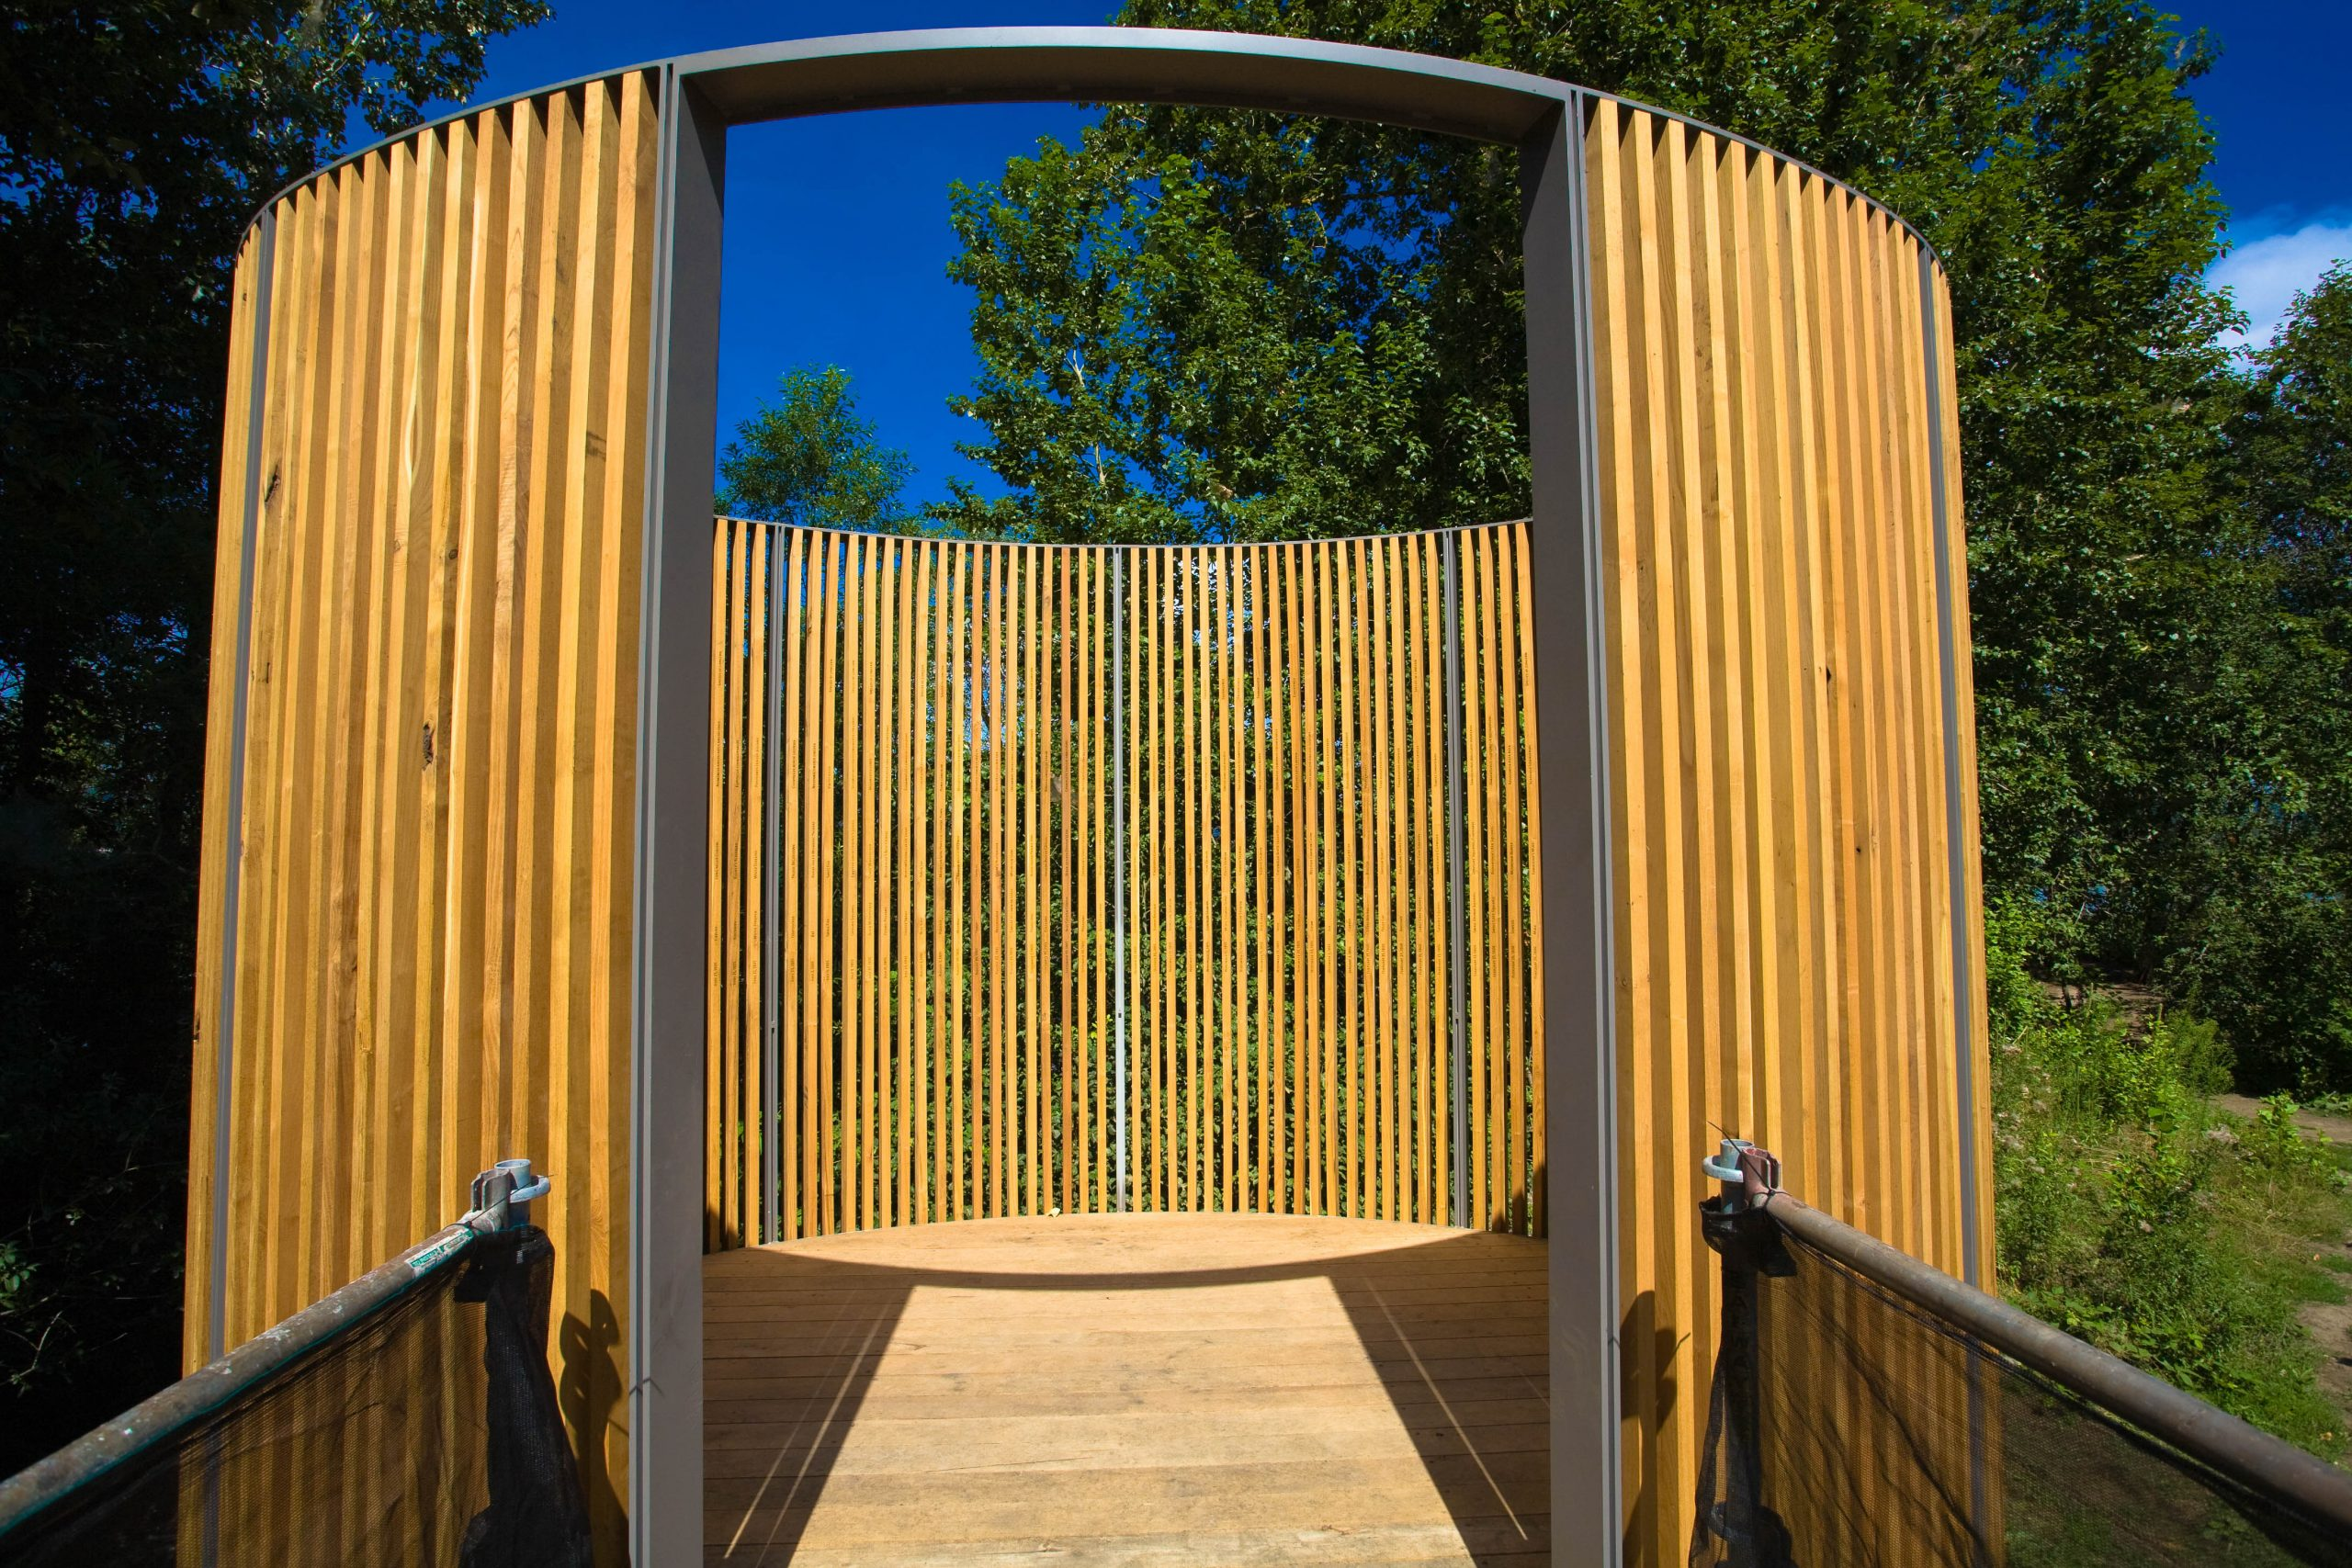 Maya Lin Interpretive Bird Blind at the Sandy Delta Confluence Park by Troutdale Oregon on the Columbia River Gorge National Scenic Area. Photo found on Flickr, https://www.flickr.com/photos/forestservicenw/.